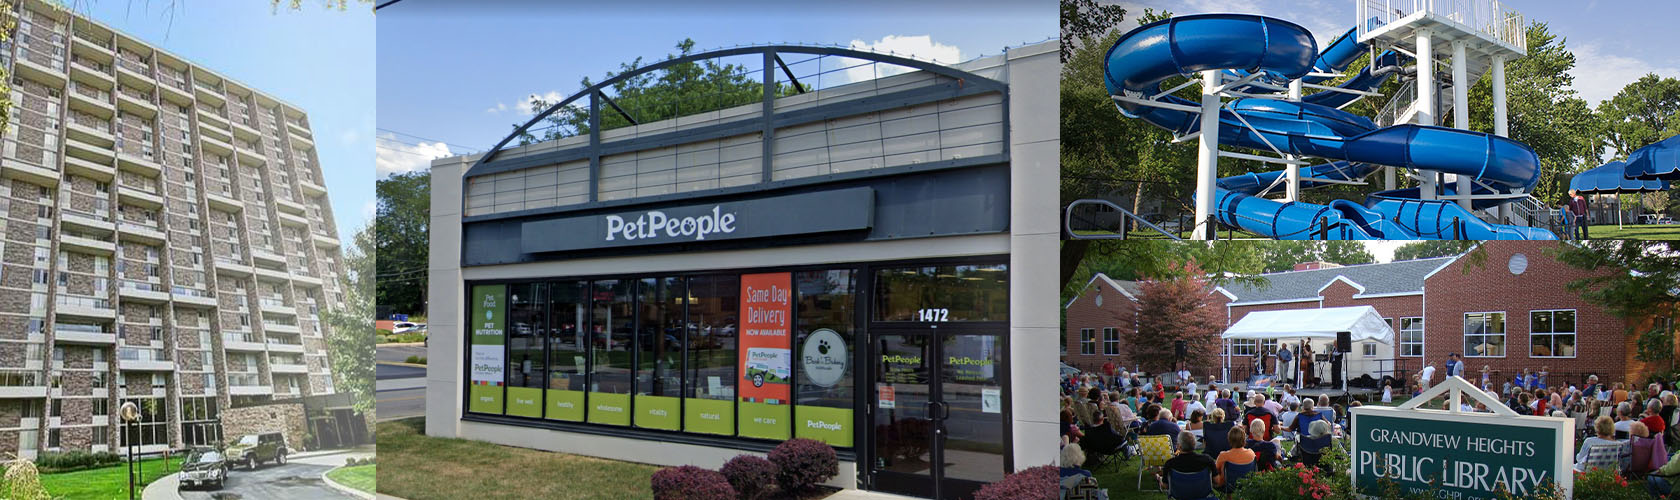 Pet People store collage in Grandview Heights